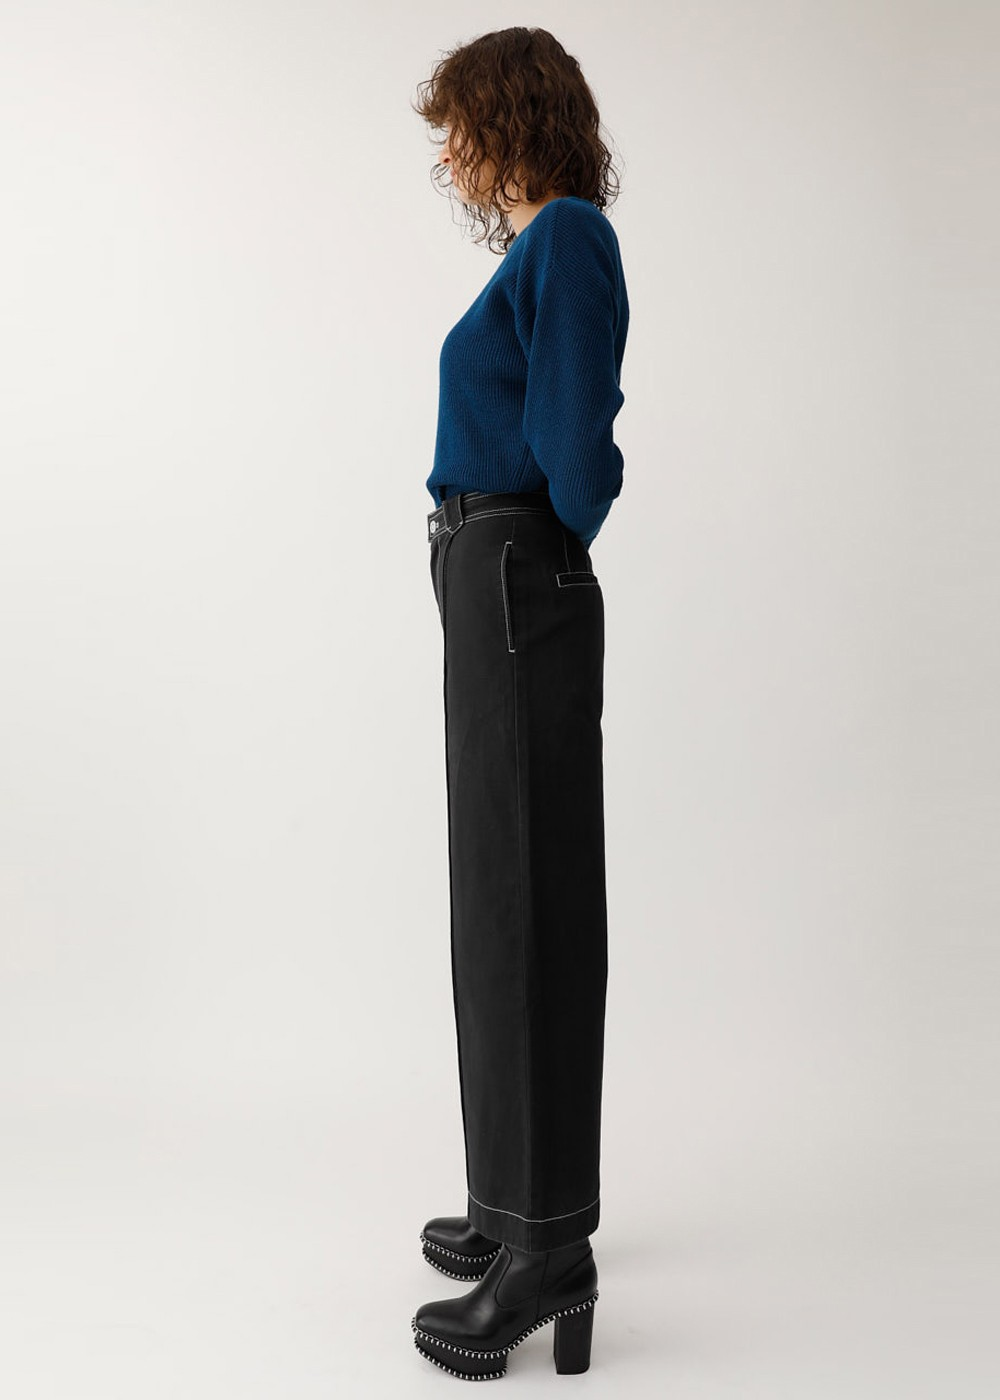 【最大60%OFF】PIN TUCK WIDE PANTS|BLK|ワイド|MOUSSY